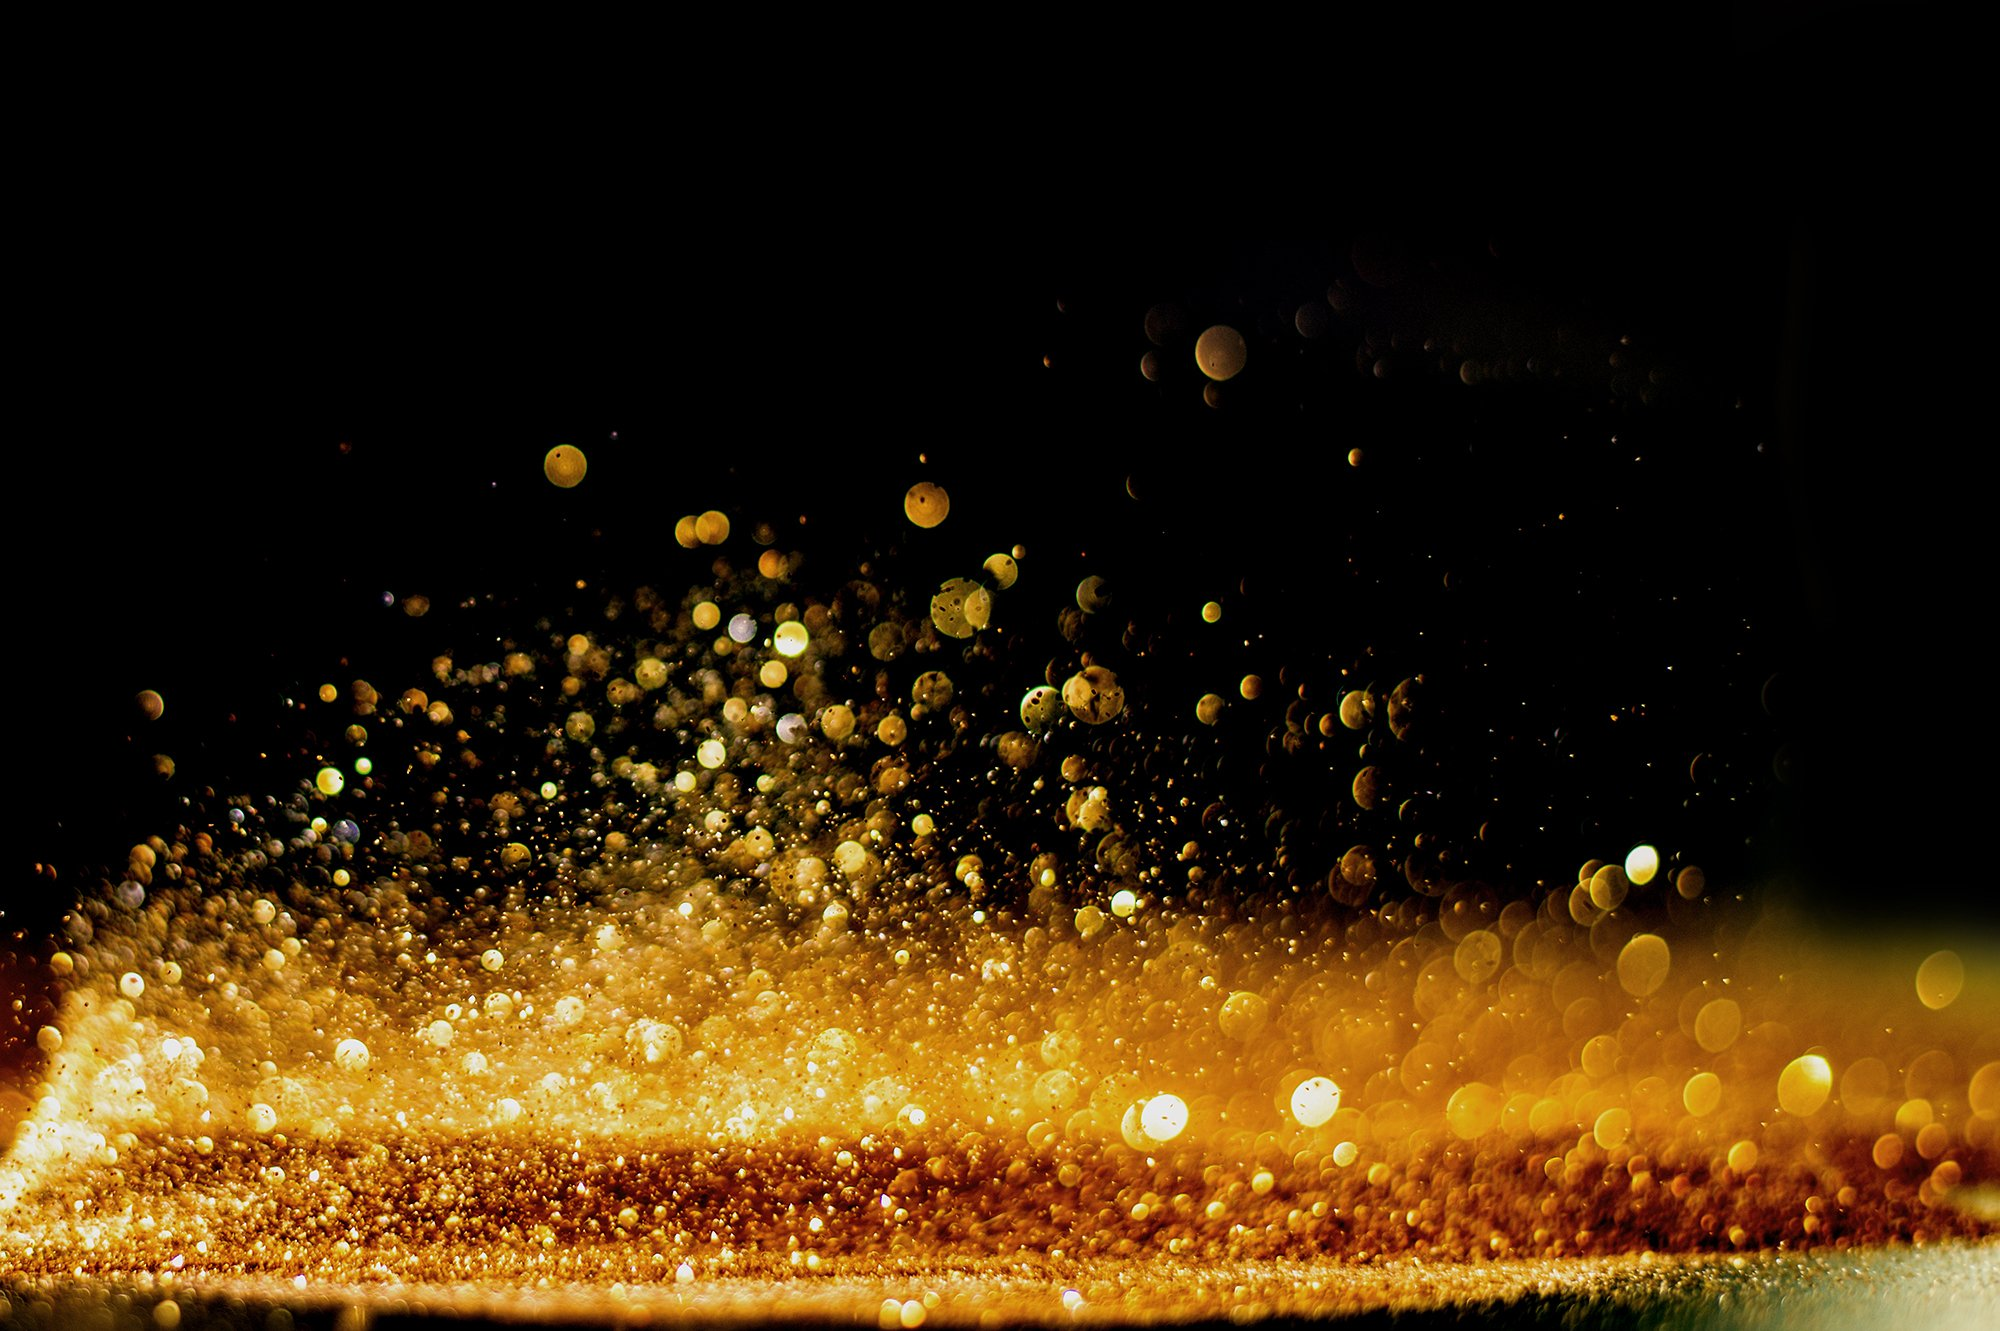 Gold glitter on a surface